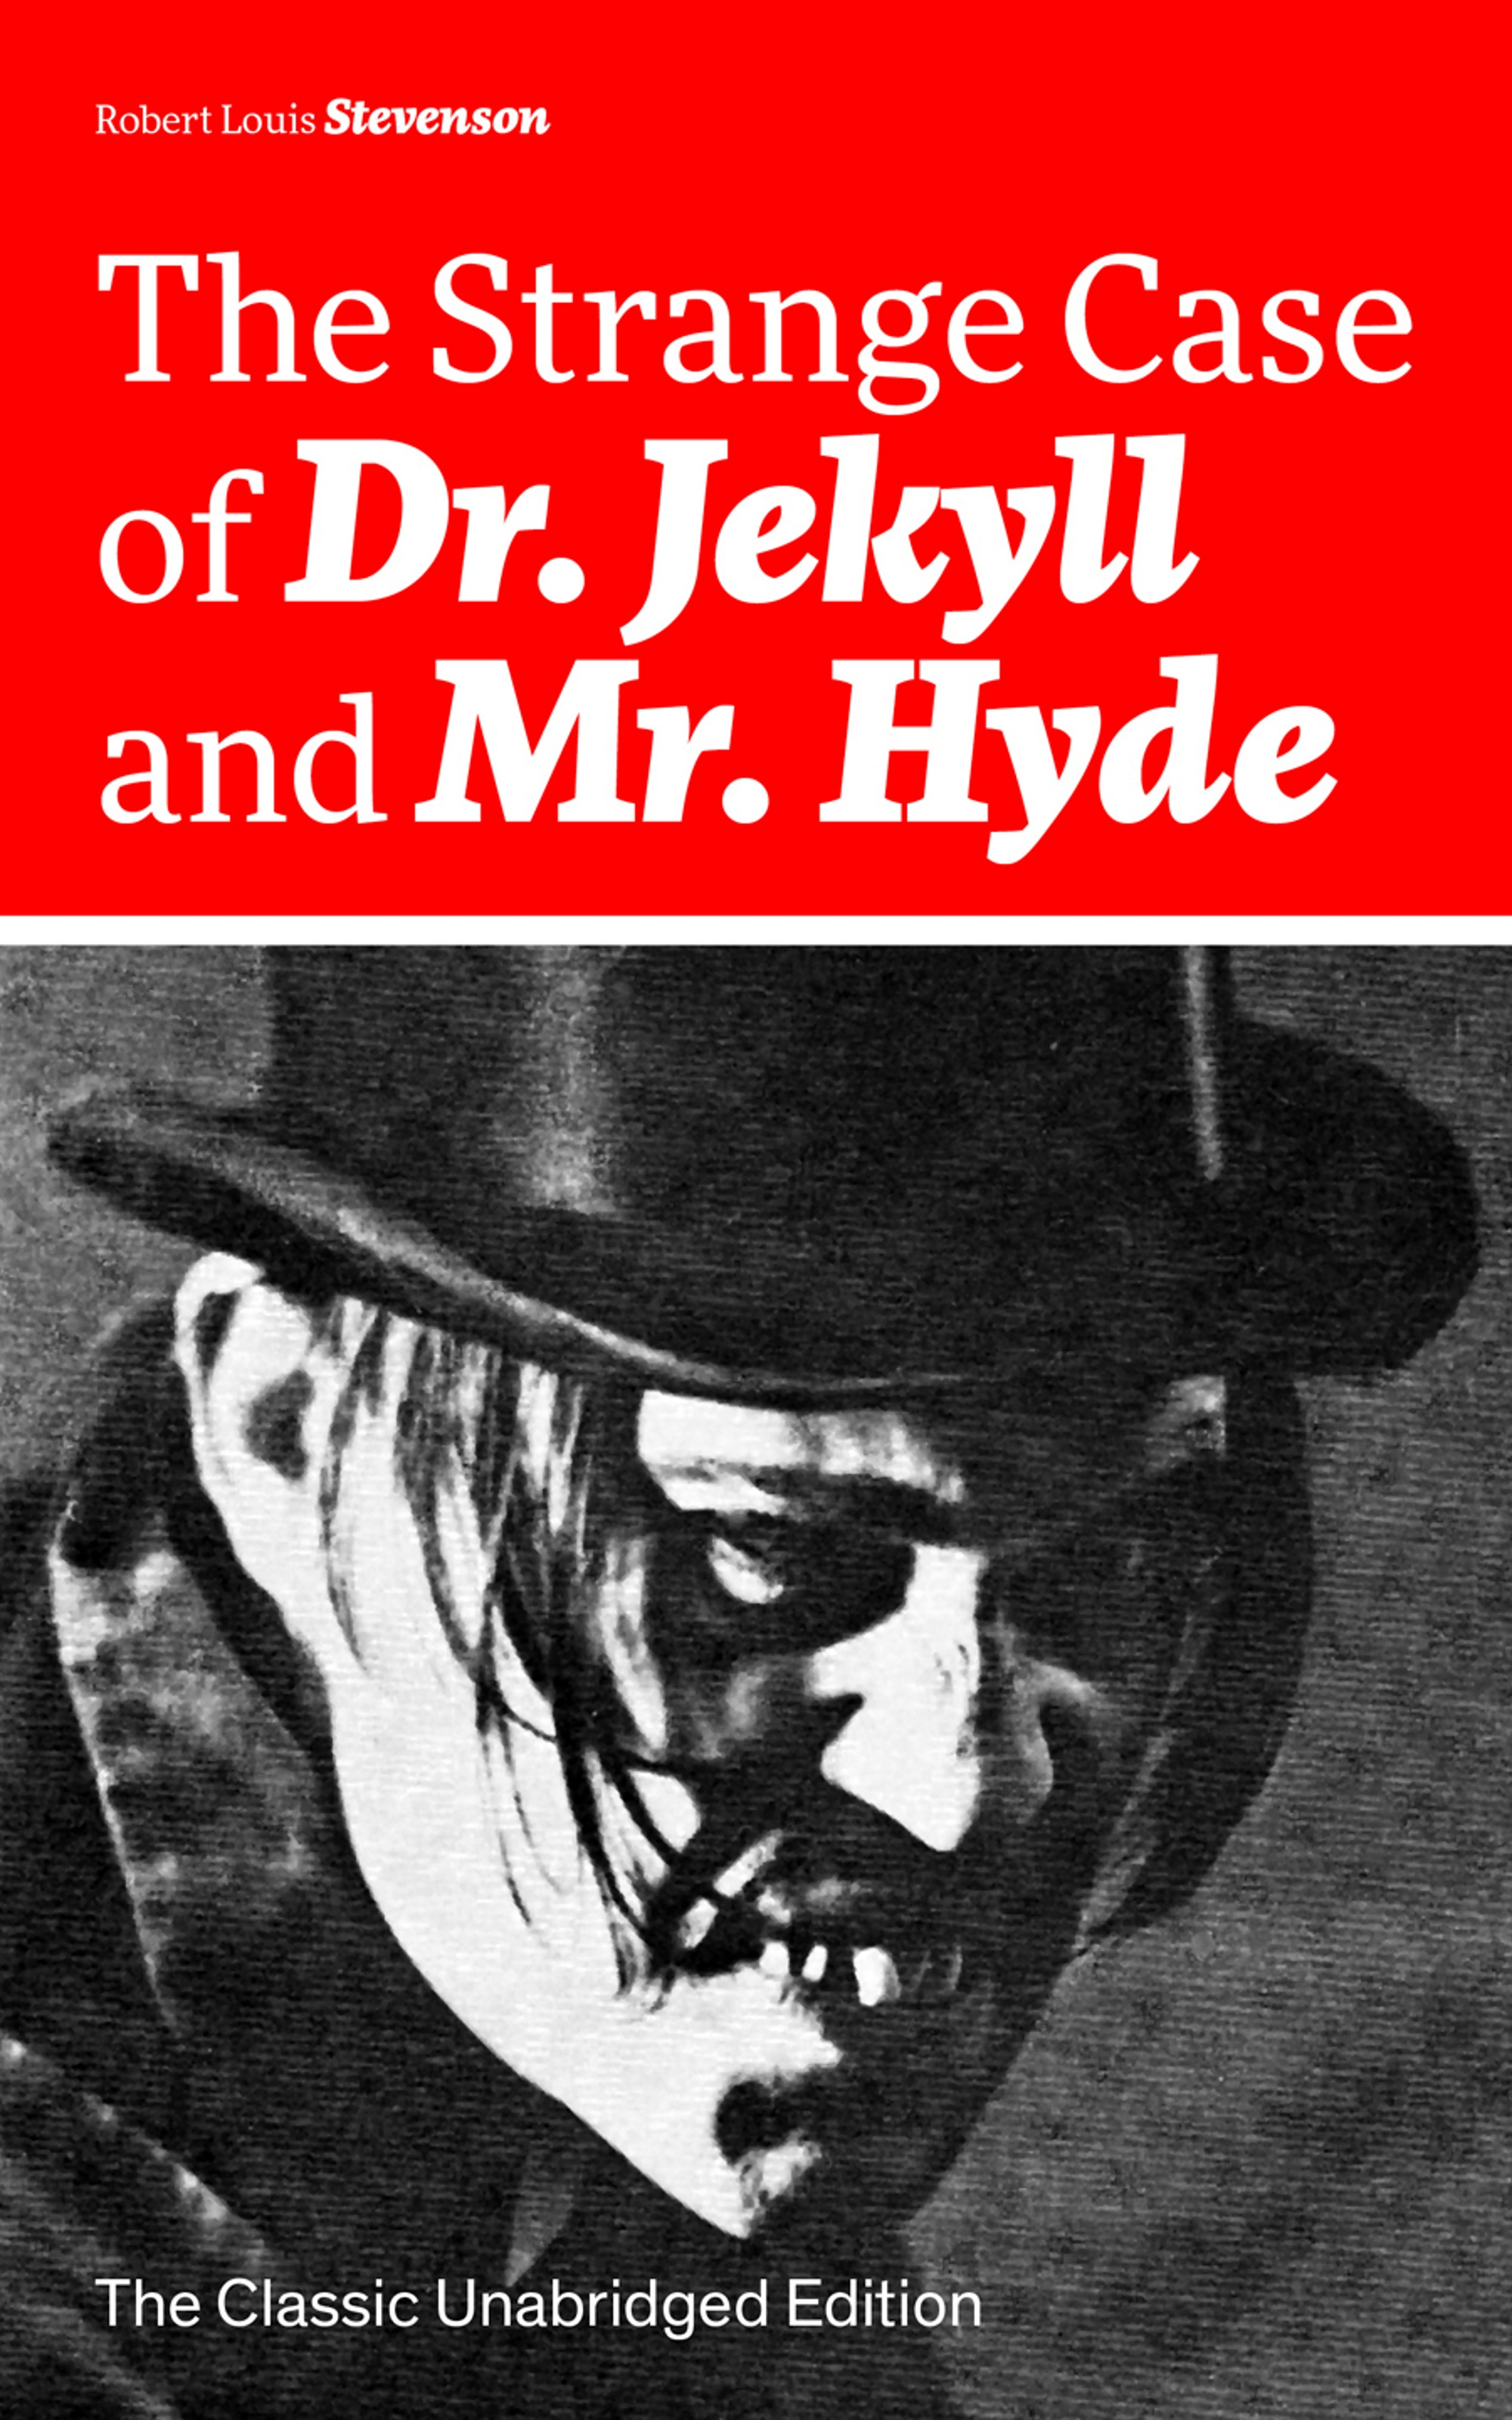 цена Robert Louis Stevenson The Strange Case of Dr. Jekyll and Mr. Hyde (The Classic Unabridged Edition) онлайн в 2017 году